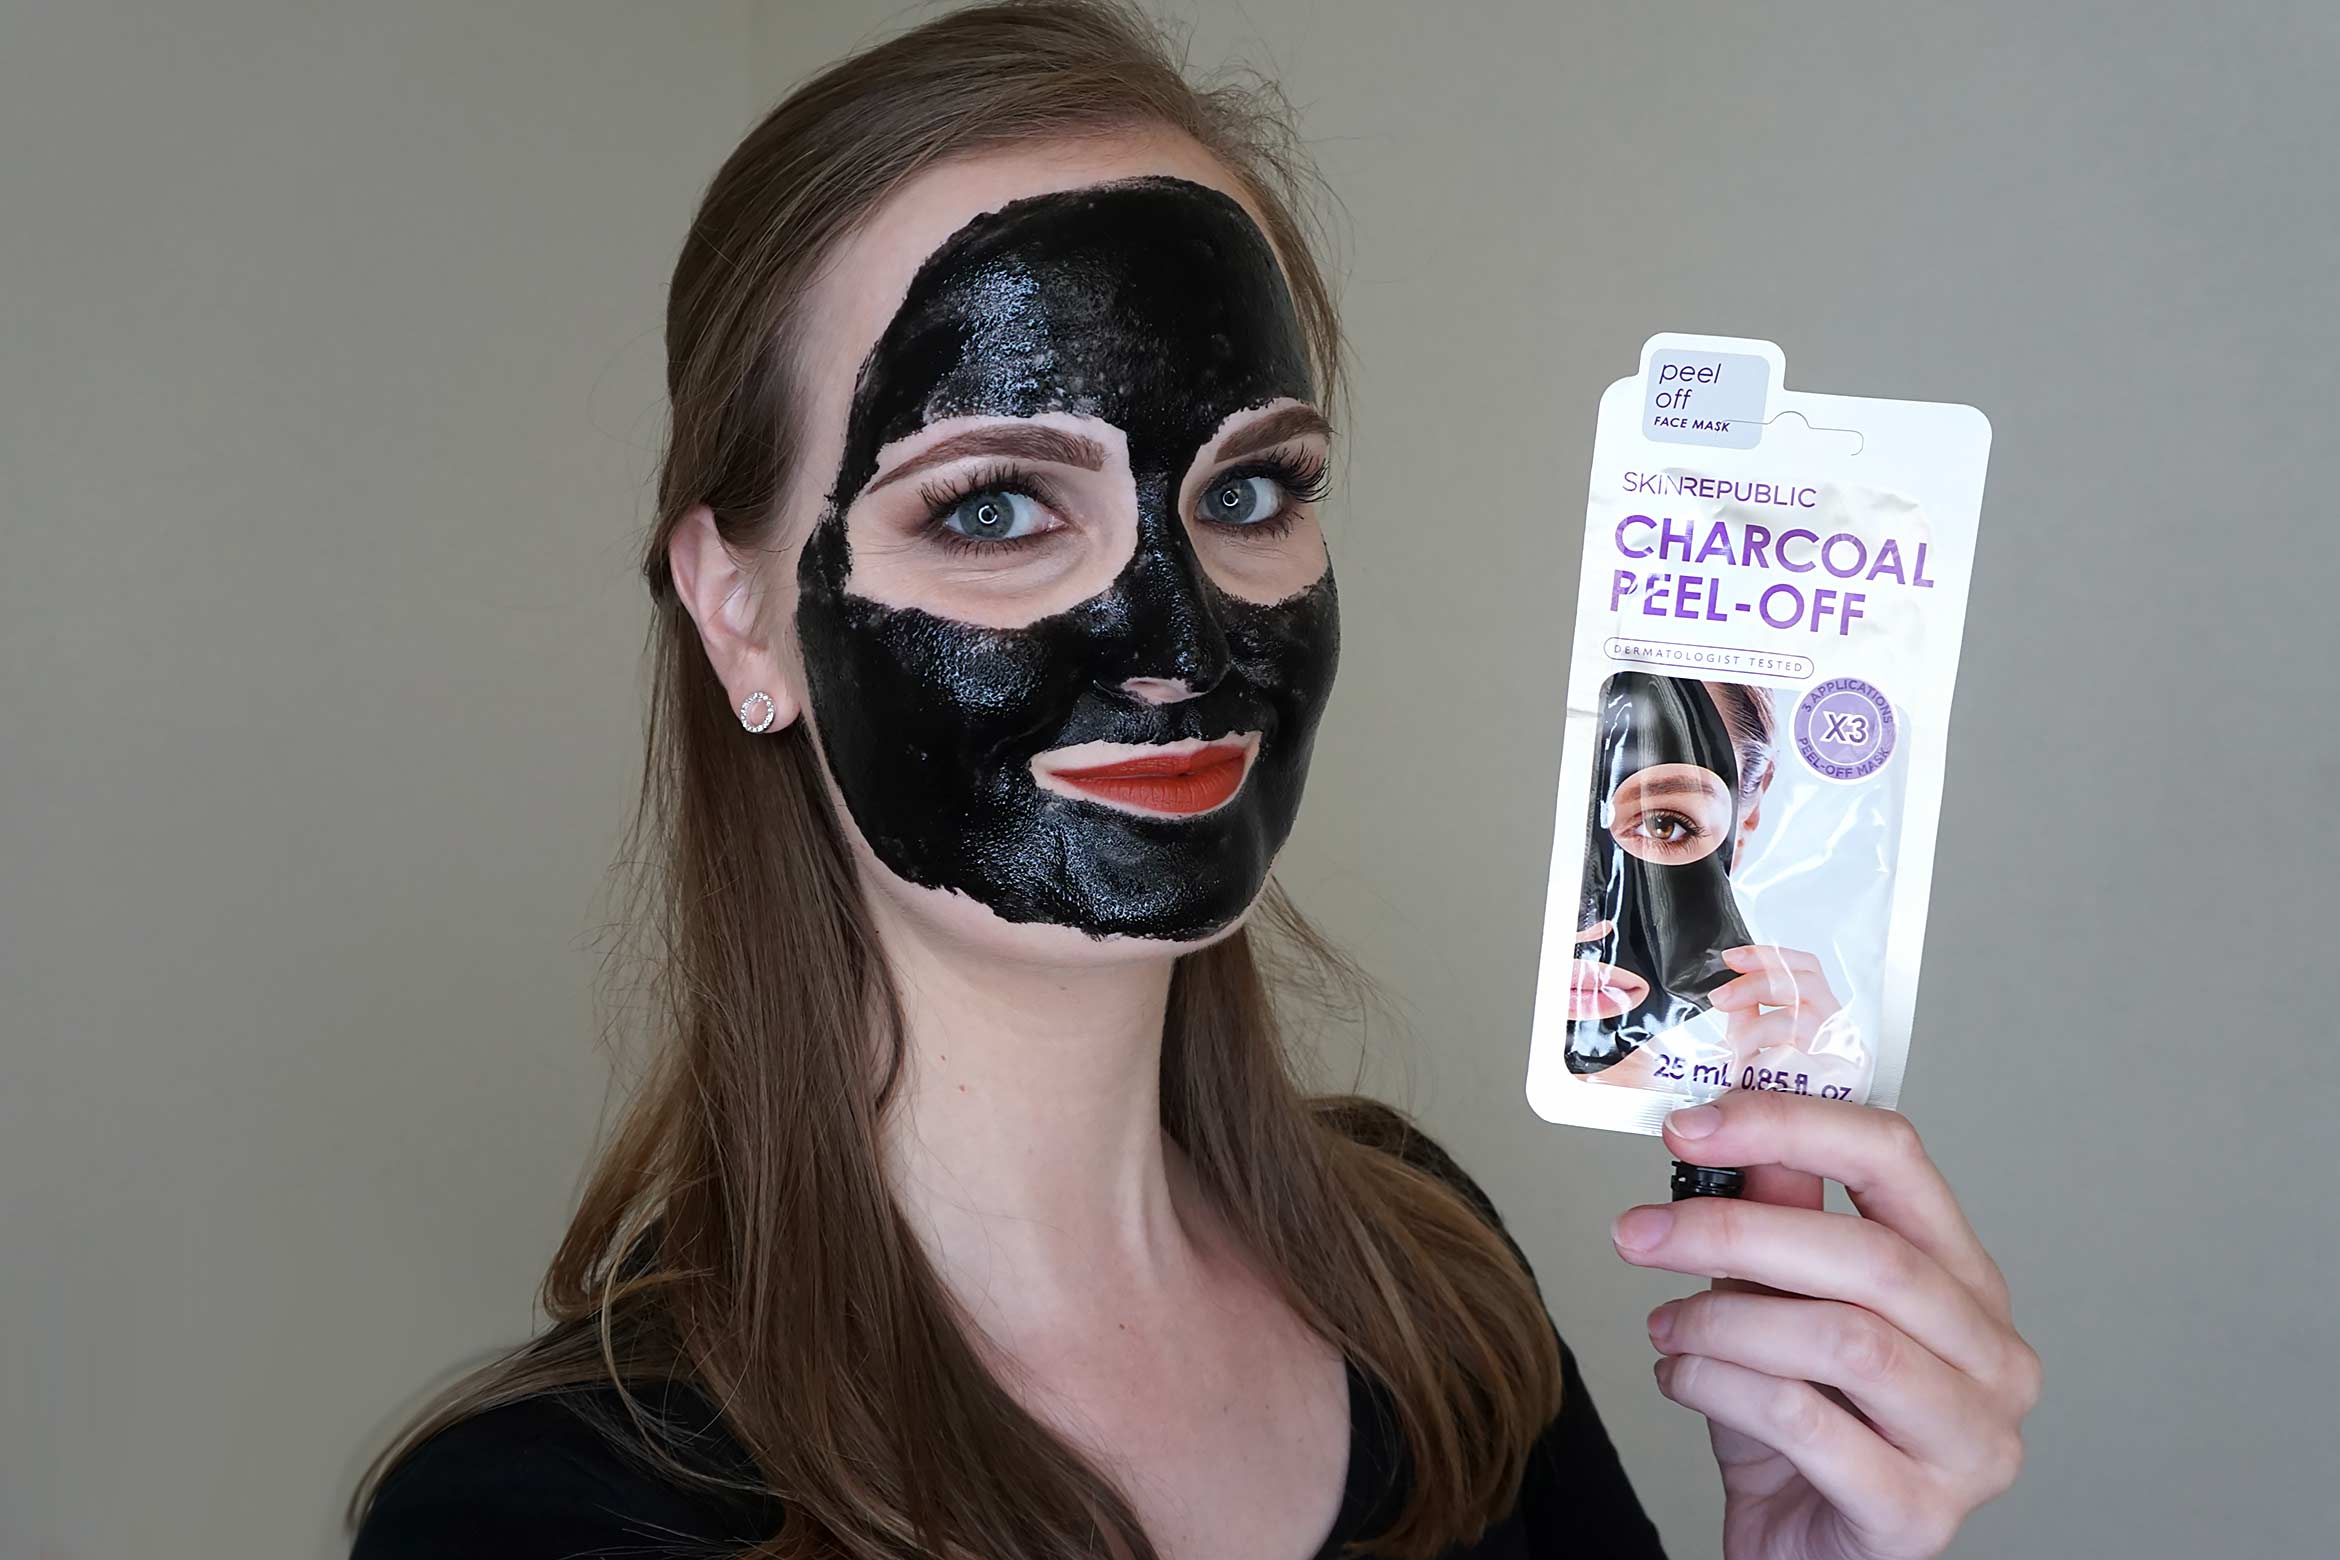 skin-republic-charcoal-peel-off-mask-review-2